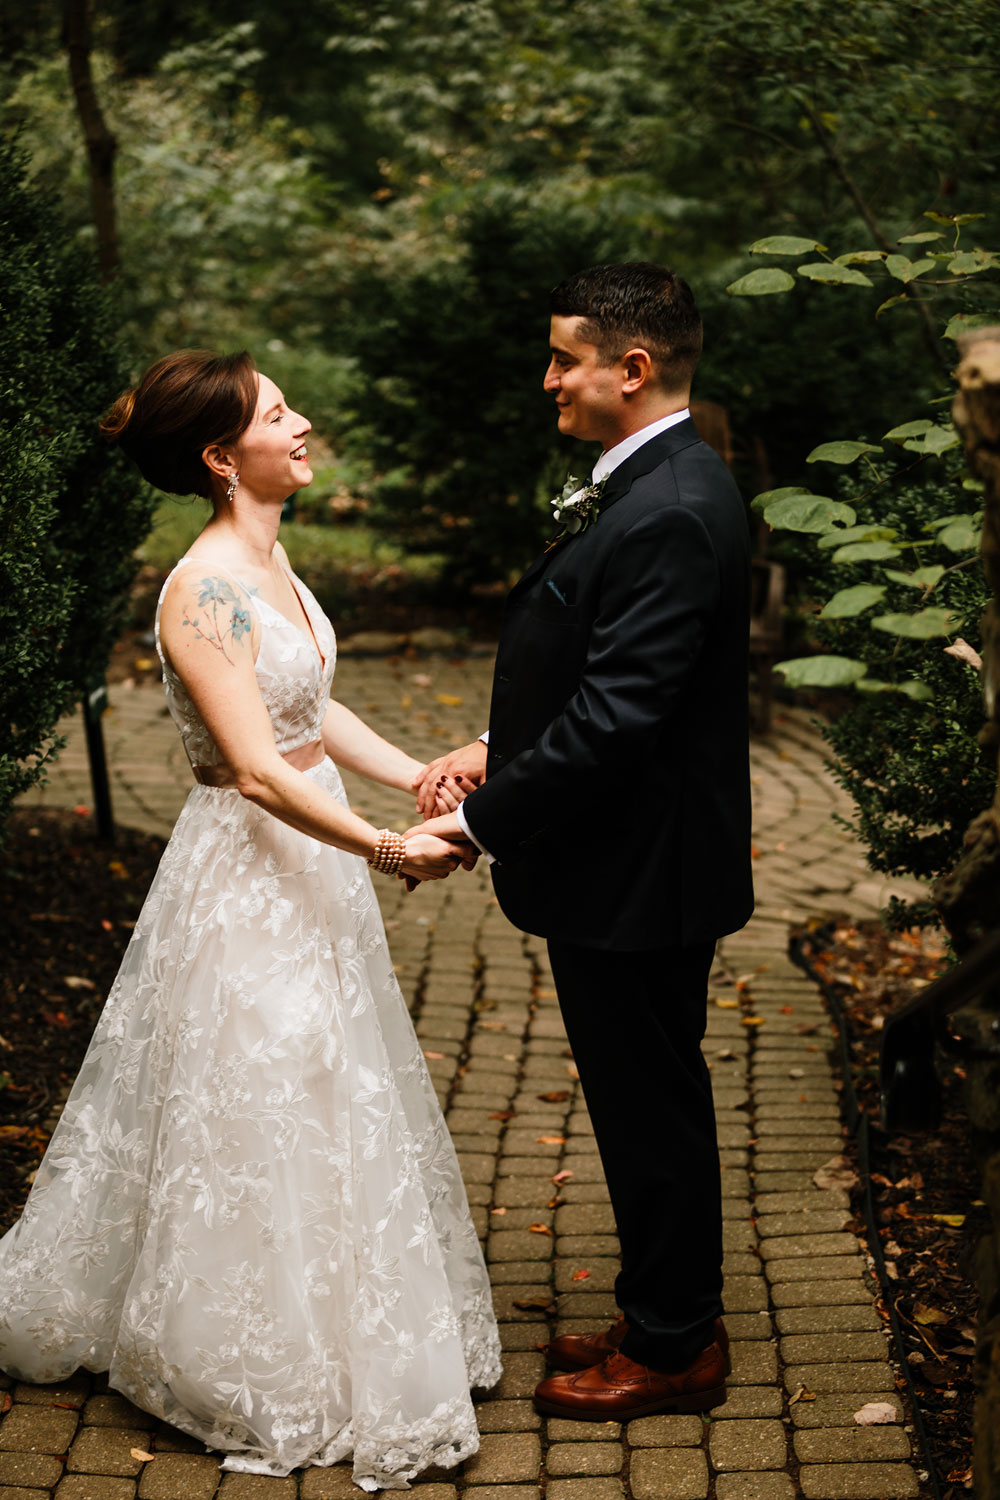 cleveland-wedding-photographers-at-landolls-mohican-castle-central-ohio-romantic-wedding-photography-58.jpg